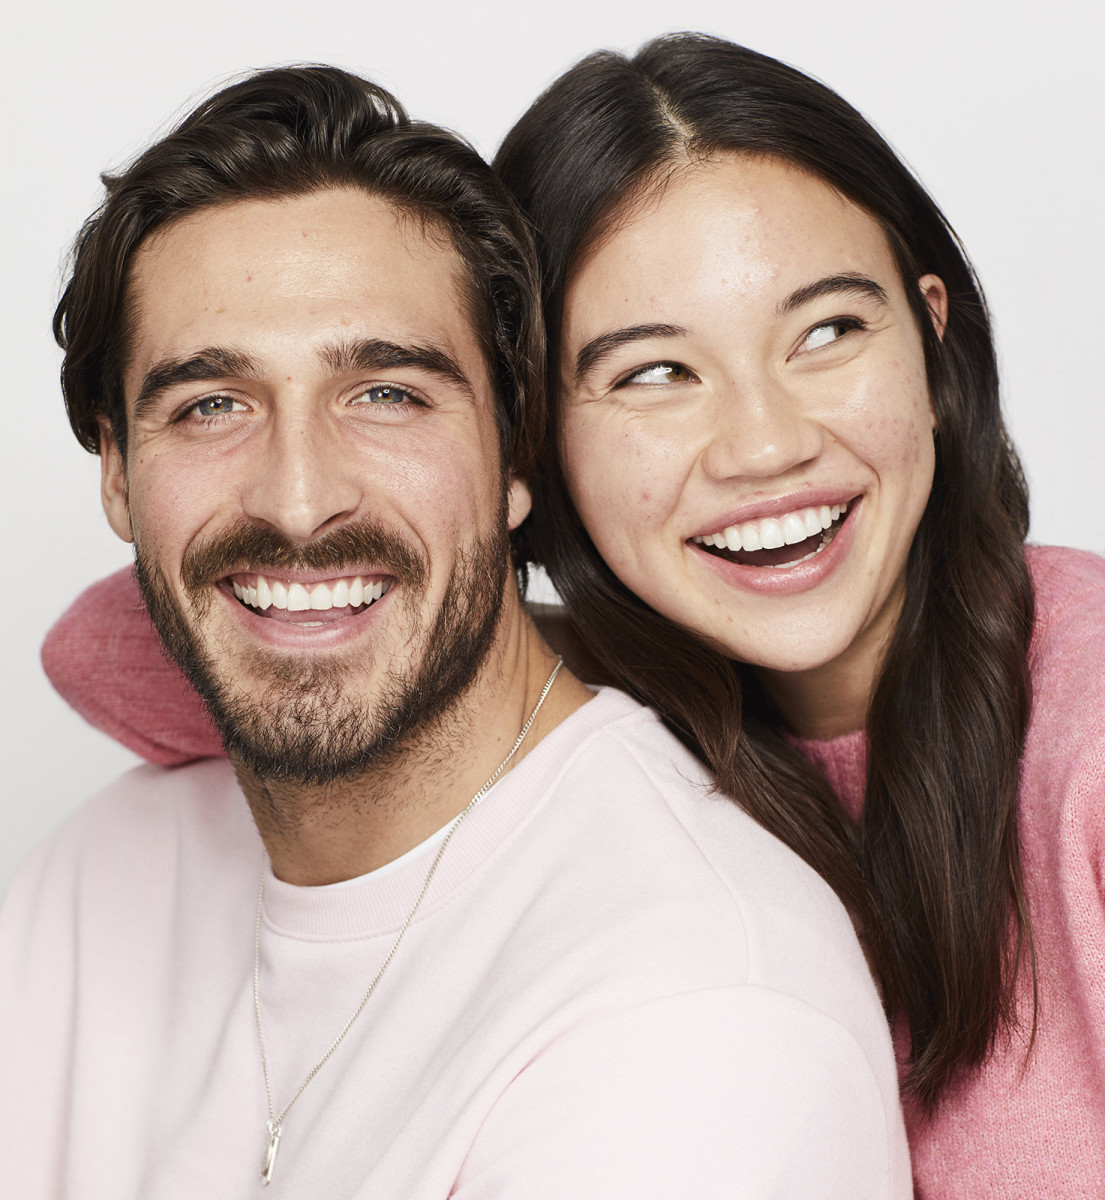 Models Gabriel and Teagan and their bare, un-retouched skin for Shopper's Drug Mart's Skin Celebrated campaign in January 2020